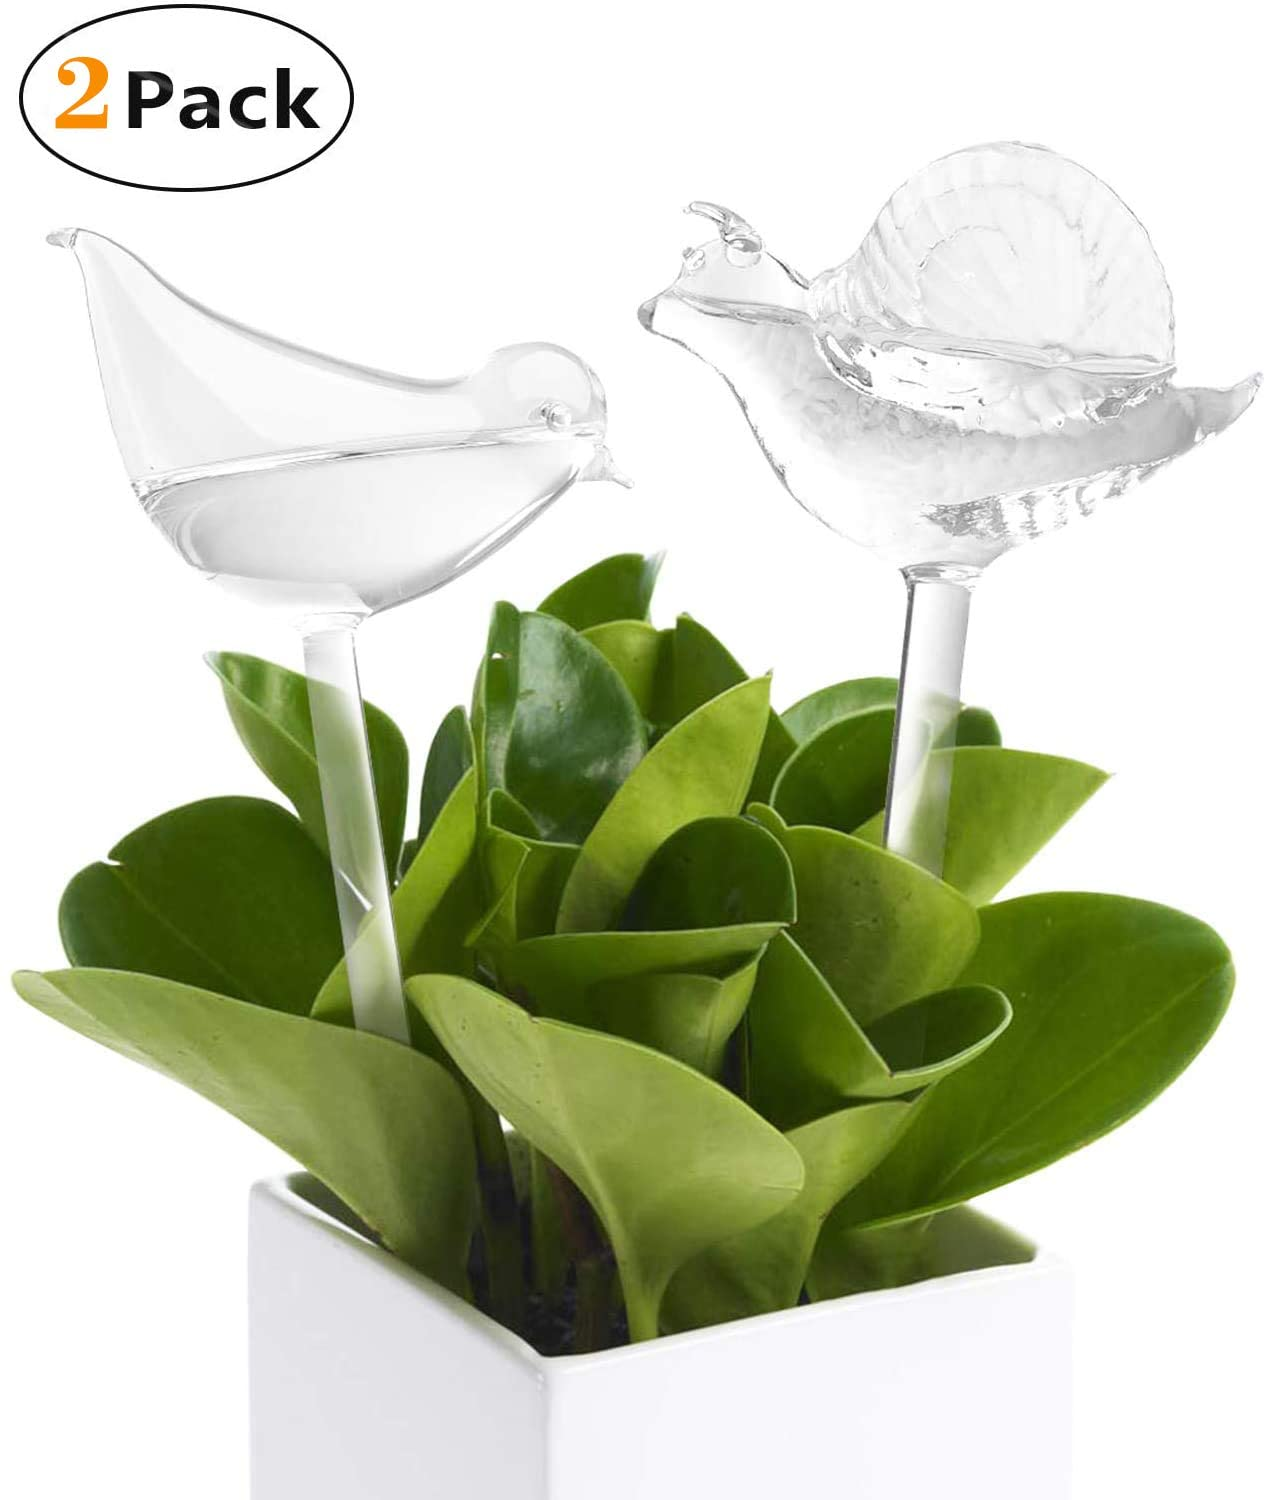 2 Pack Plant Waterer Bulbs Self Watering Globes Automatic Watering Stakes Bird Shape Design Hand Blown Clear Glass Plant Water Drippers Irrigation Devices for Indoor and Outdoor Plants (Bird & Snail)